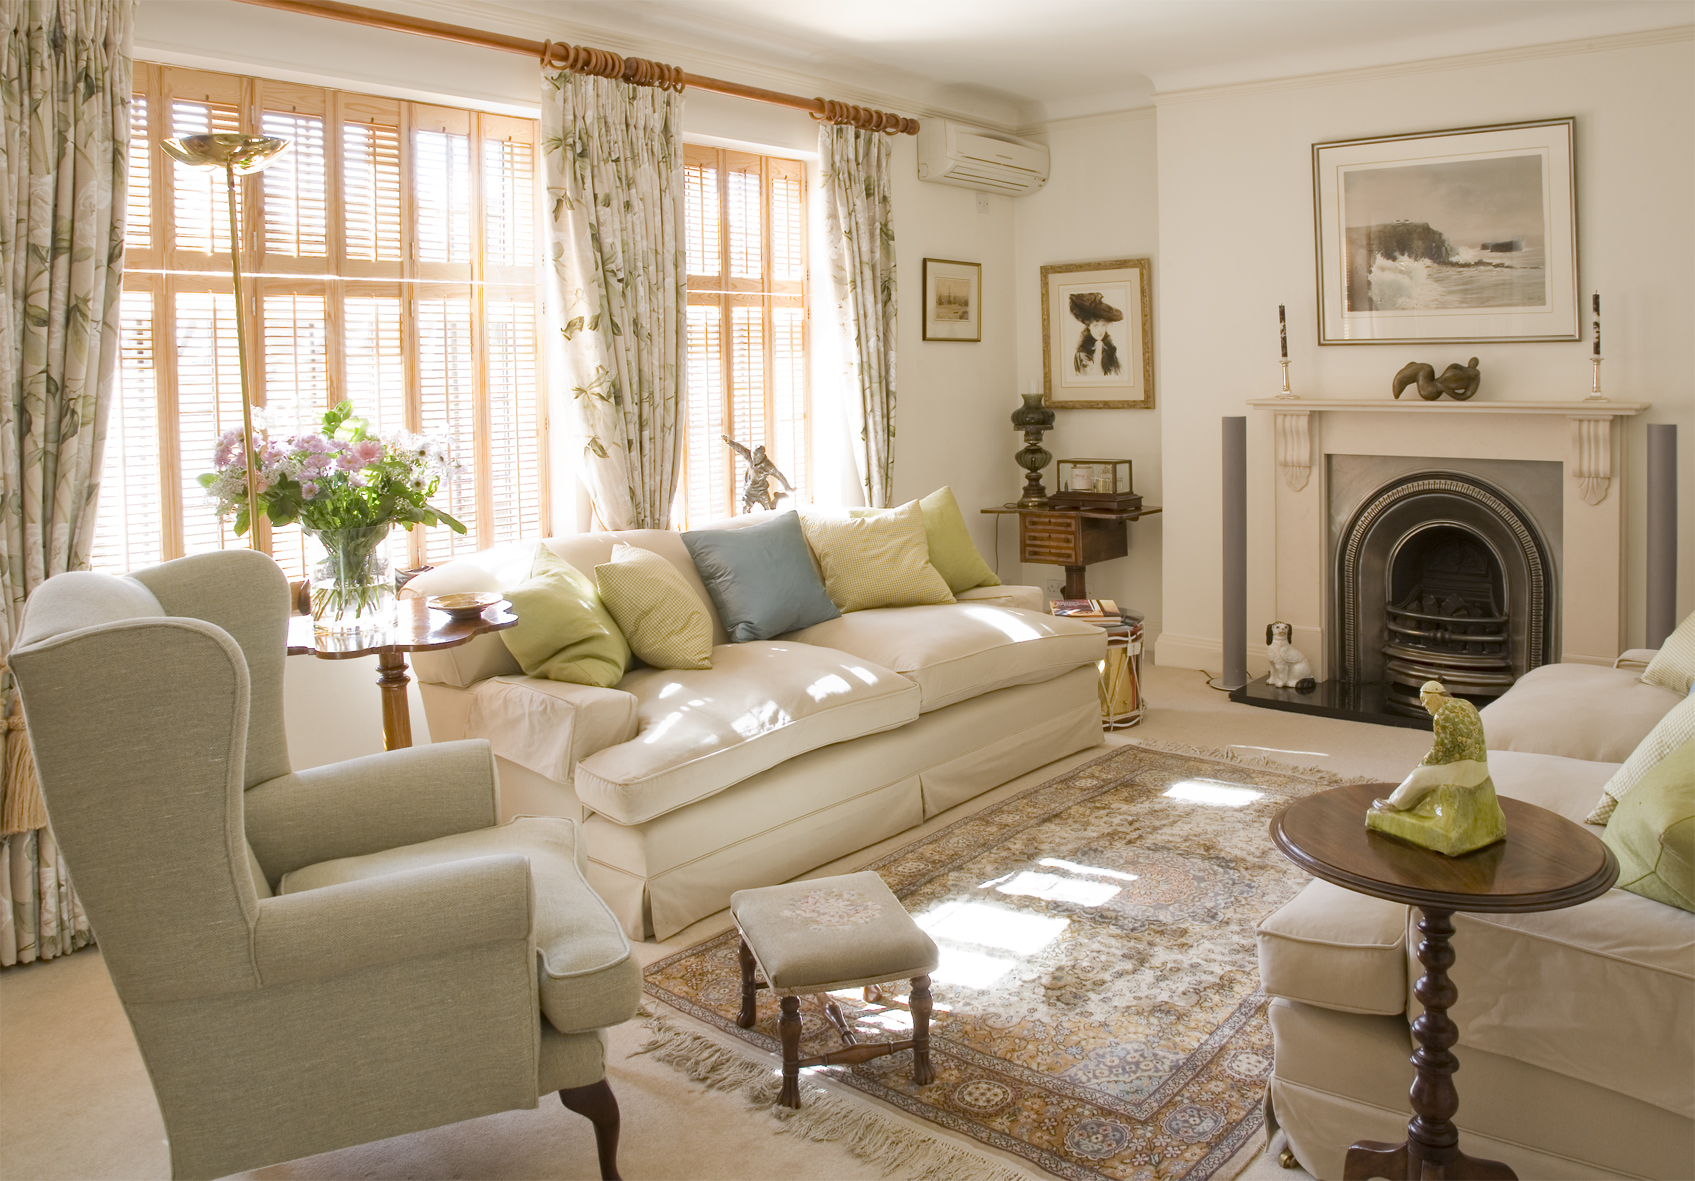 English country in the city adrienne at home for Country interior design